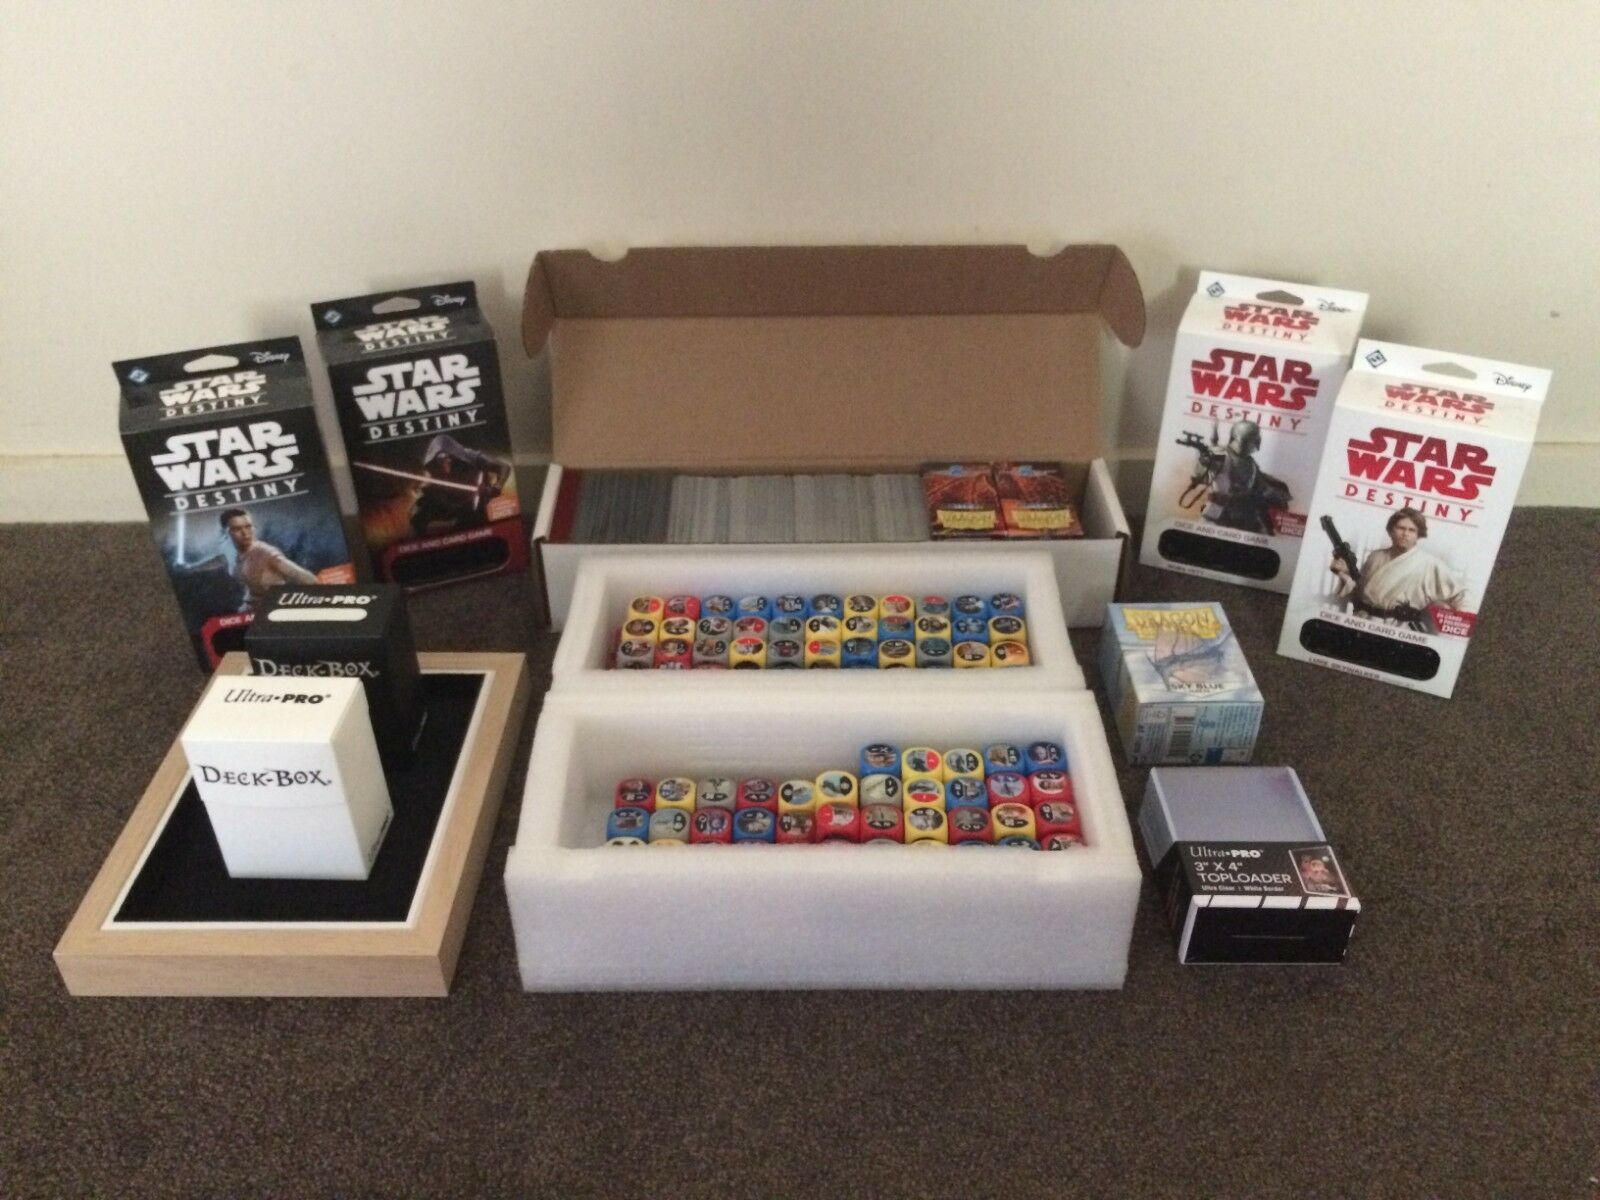 Star Wars Destiny Collection - Three Booster Boxes Worth and More